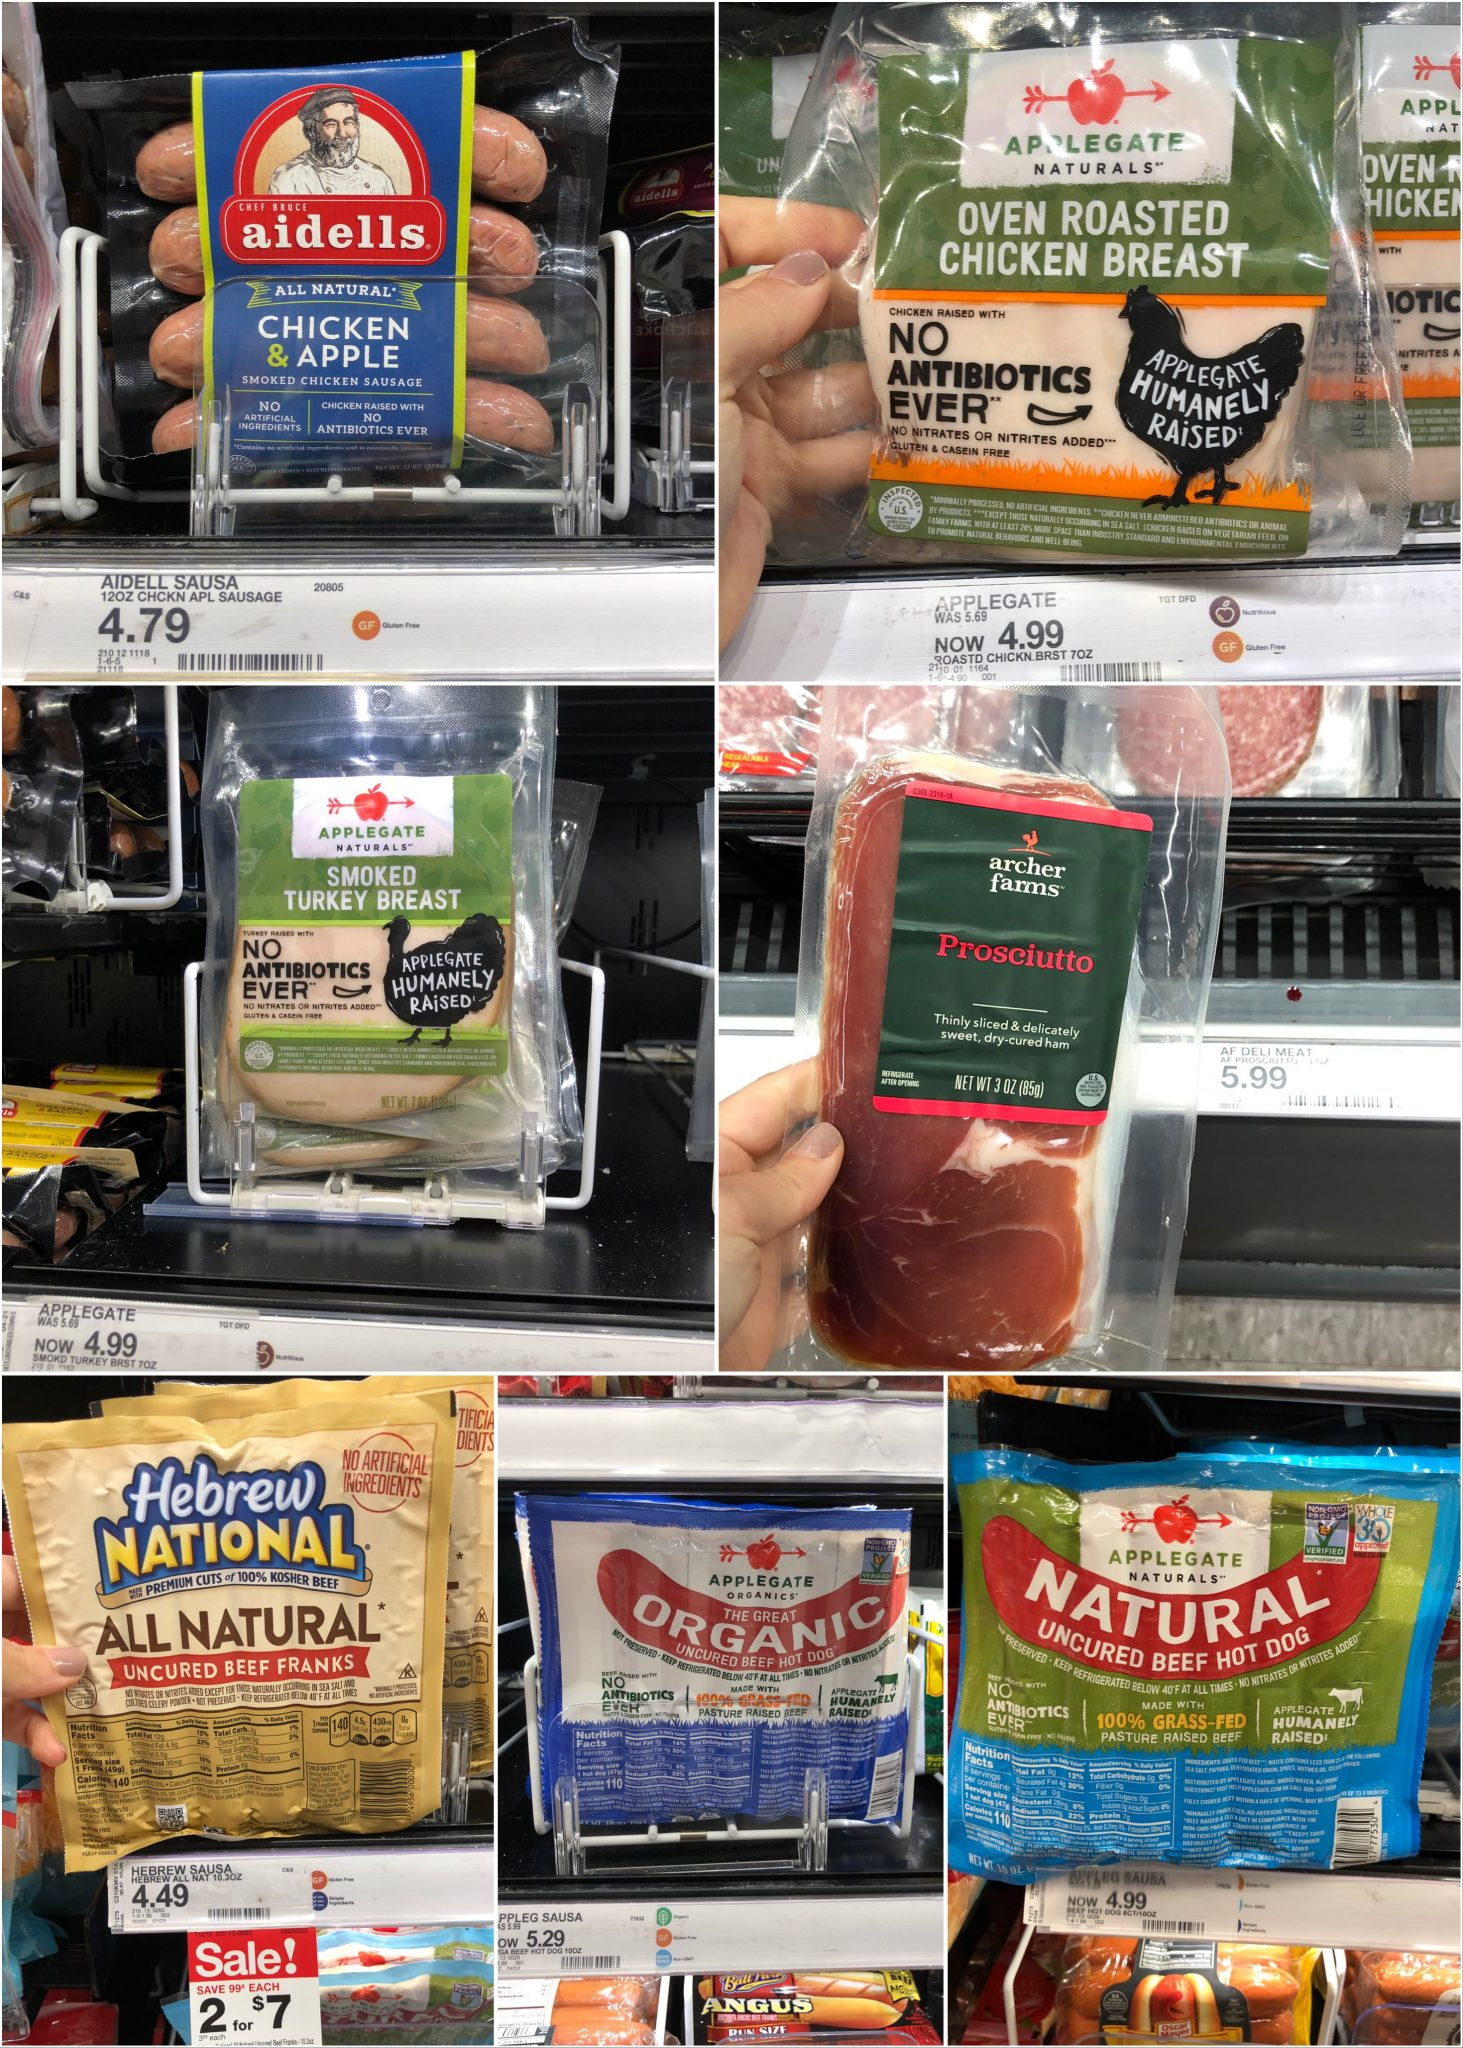 Collage of packaged sausages, lunch meat, and hot dogs.